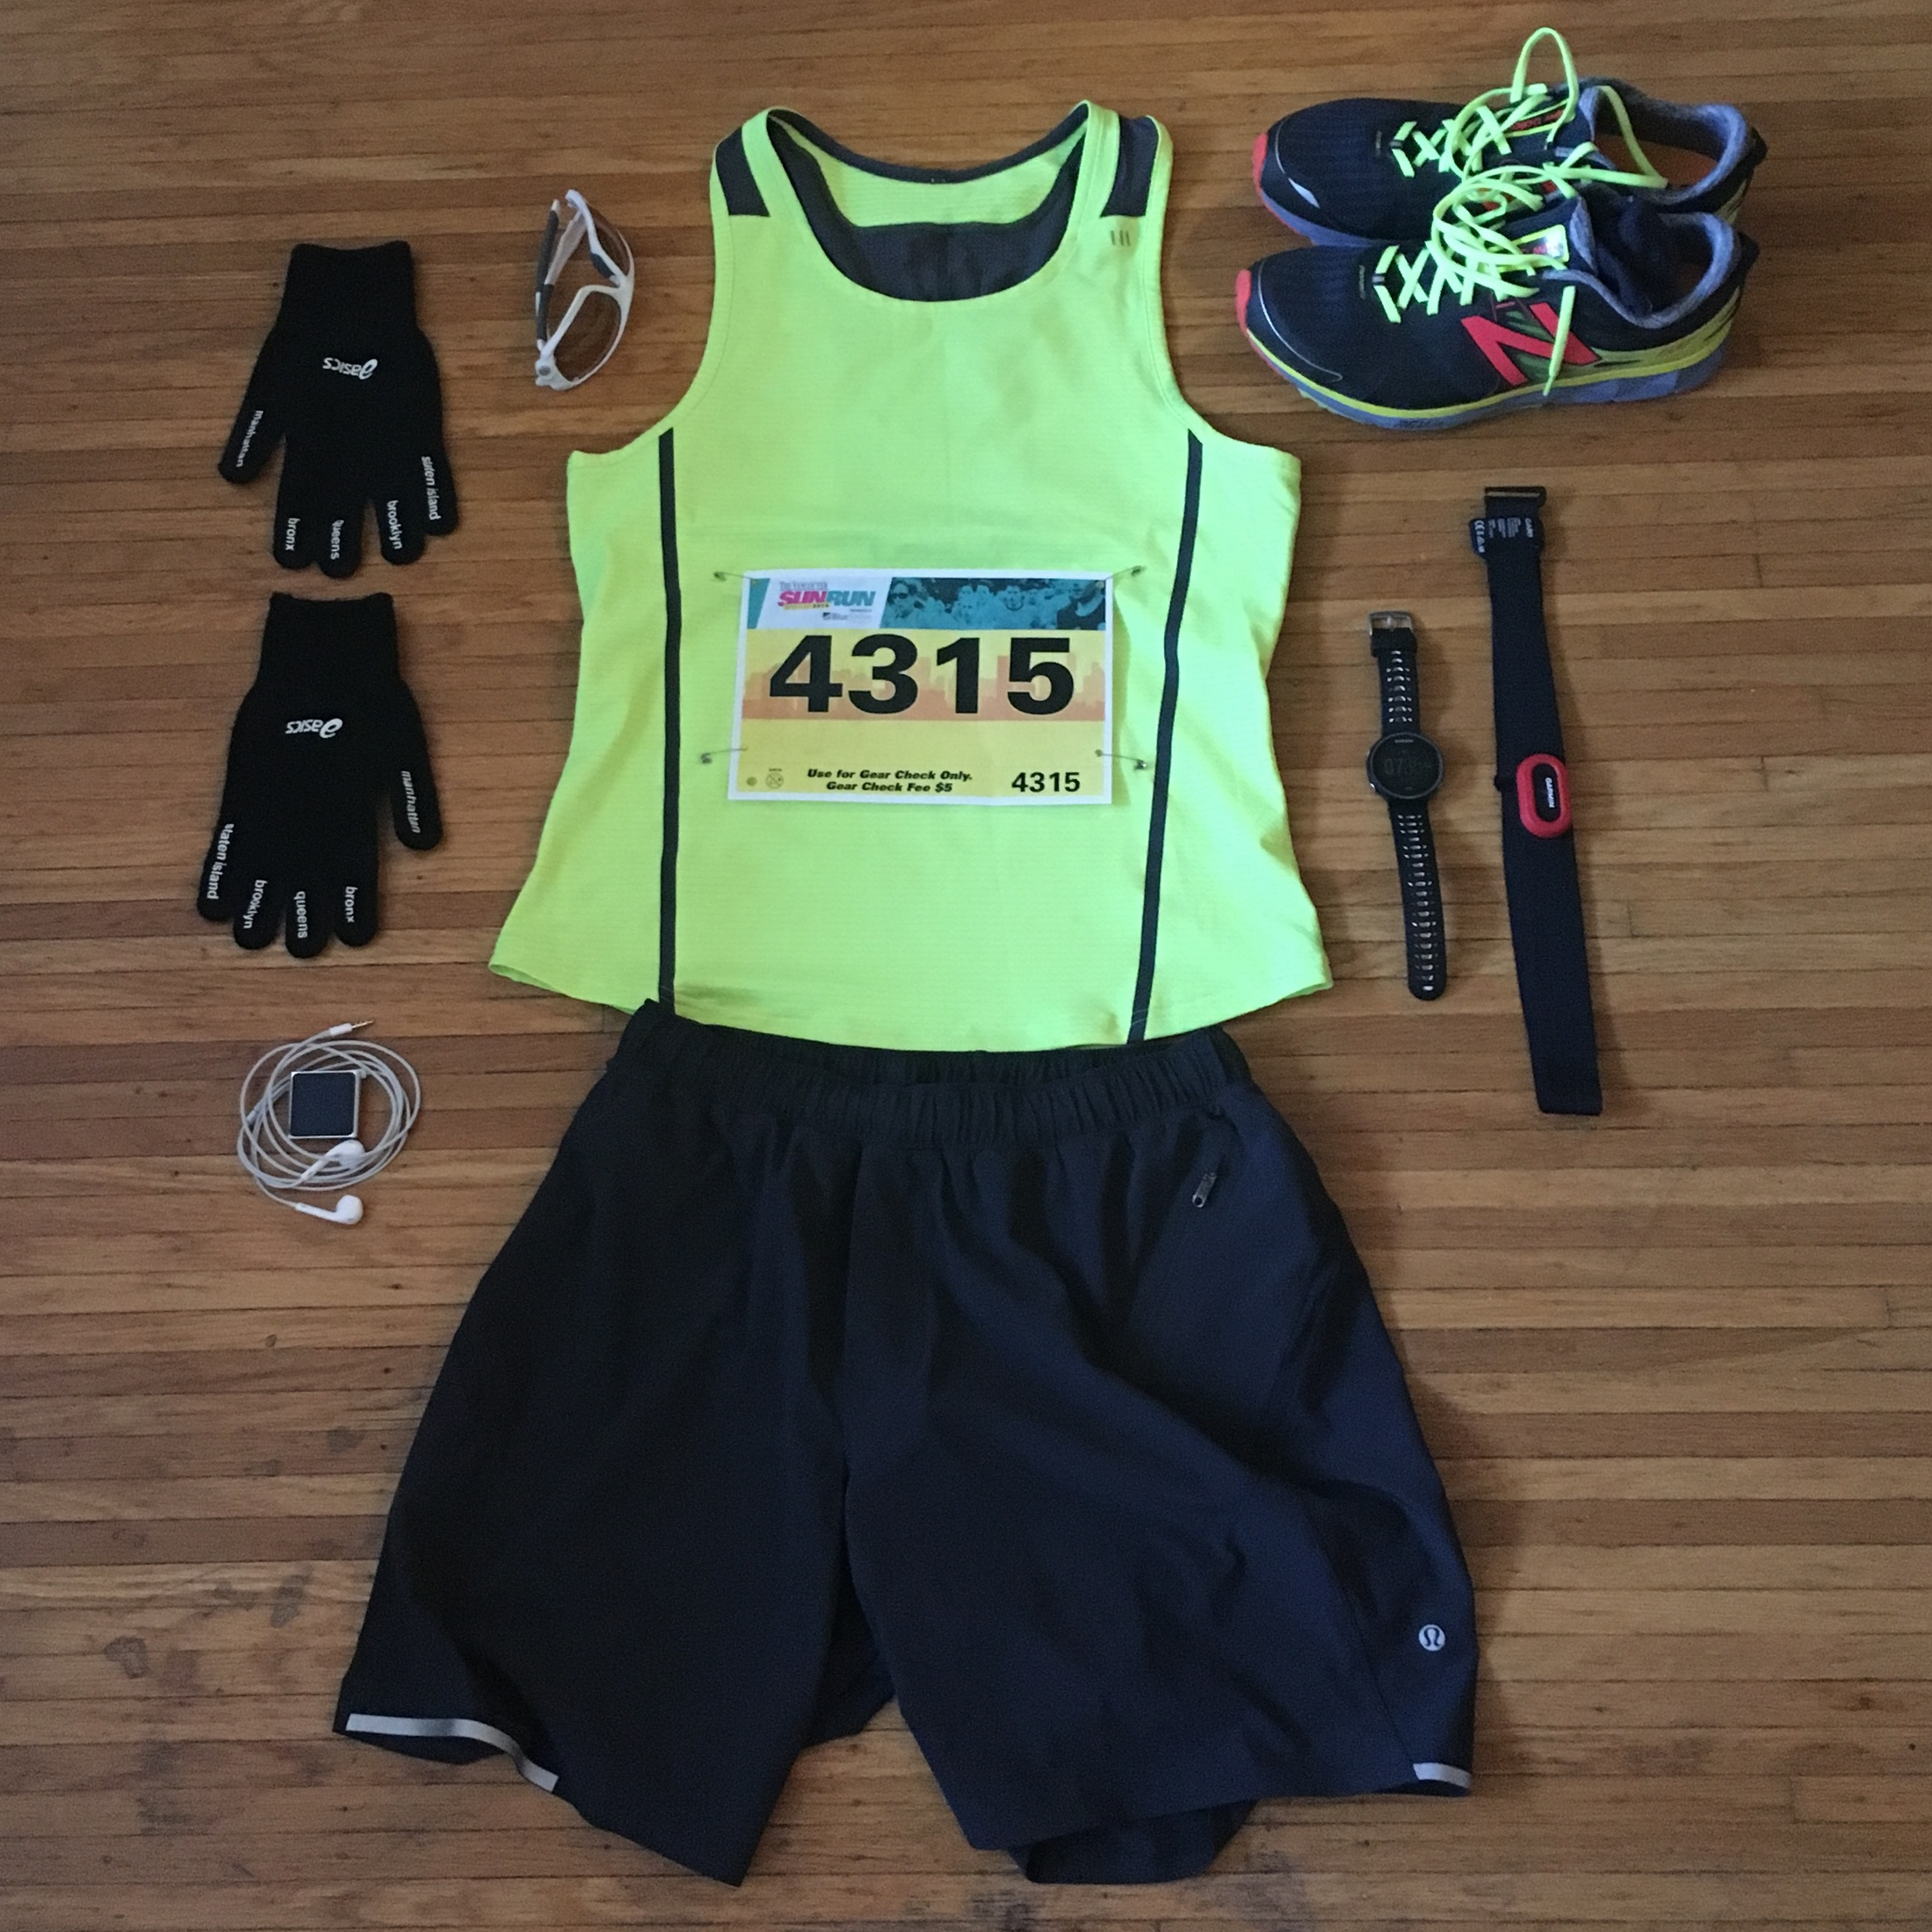 "Race Day Protocol – kit check : New Balance 1500v2 shoes. Garmin Forerunner 630 watch with HRM-Run strap. Lululemon 5"" Surge Shorts. Asics New York Marathon gloves. Oakley Jawbone sunnies. iPod Nano: the square one (the best Apple ever made!)"